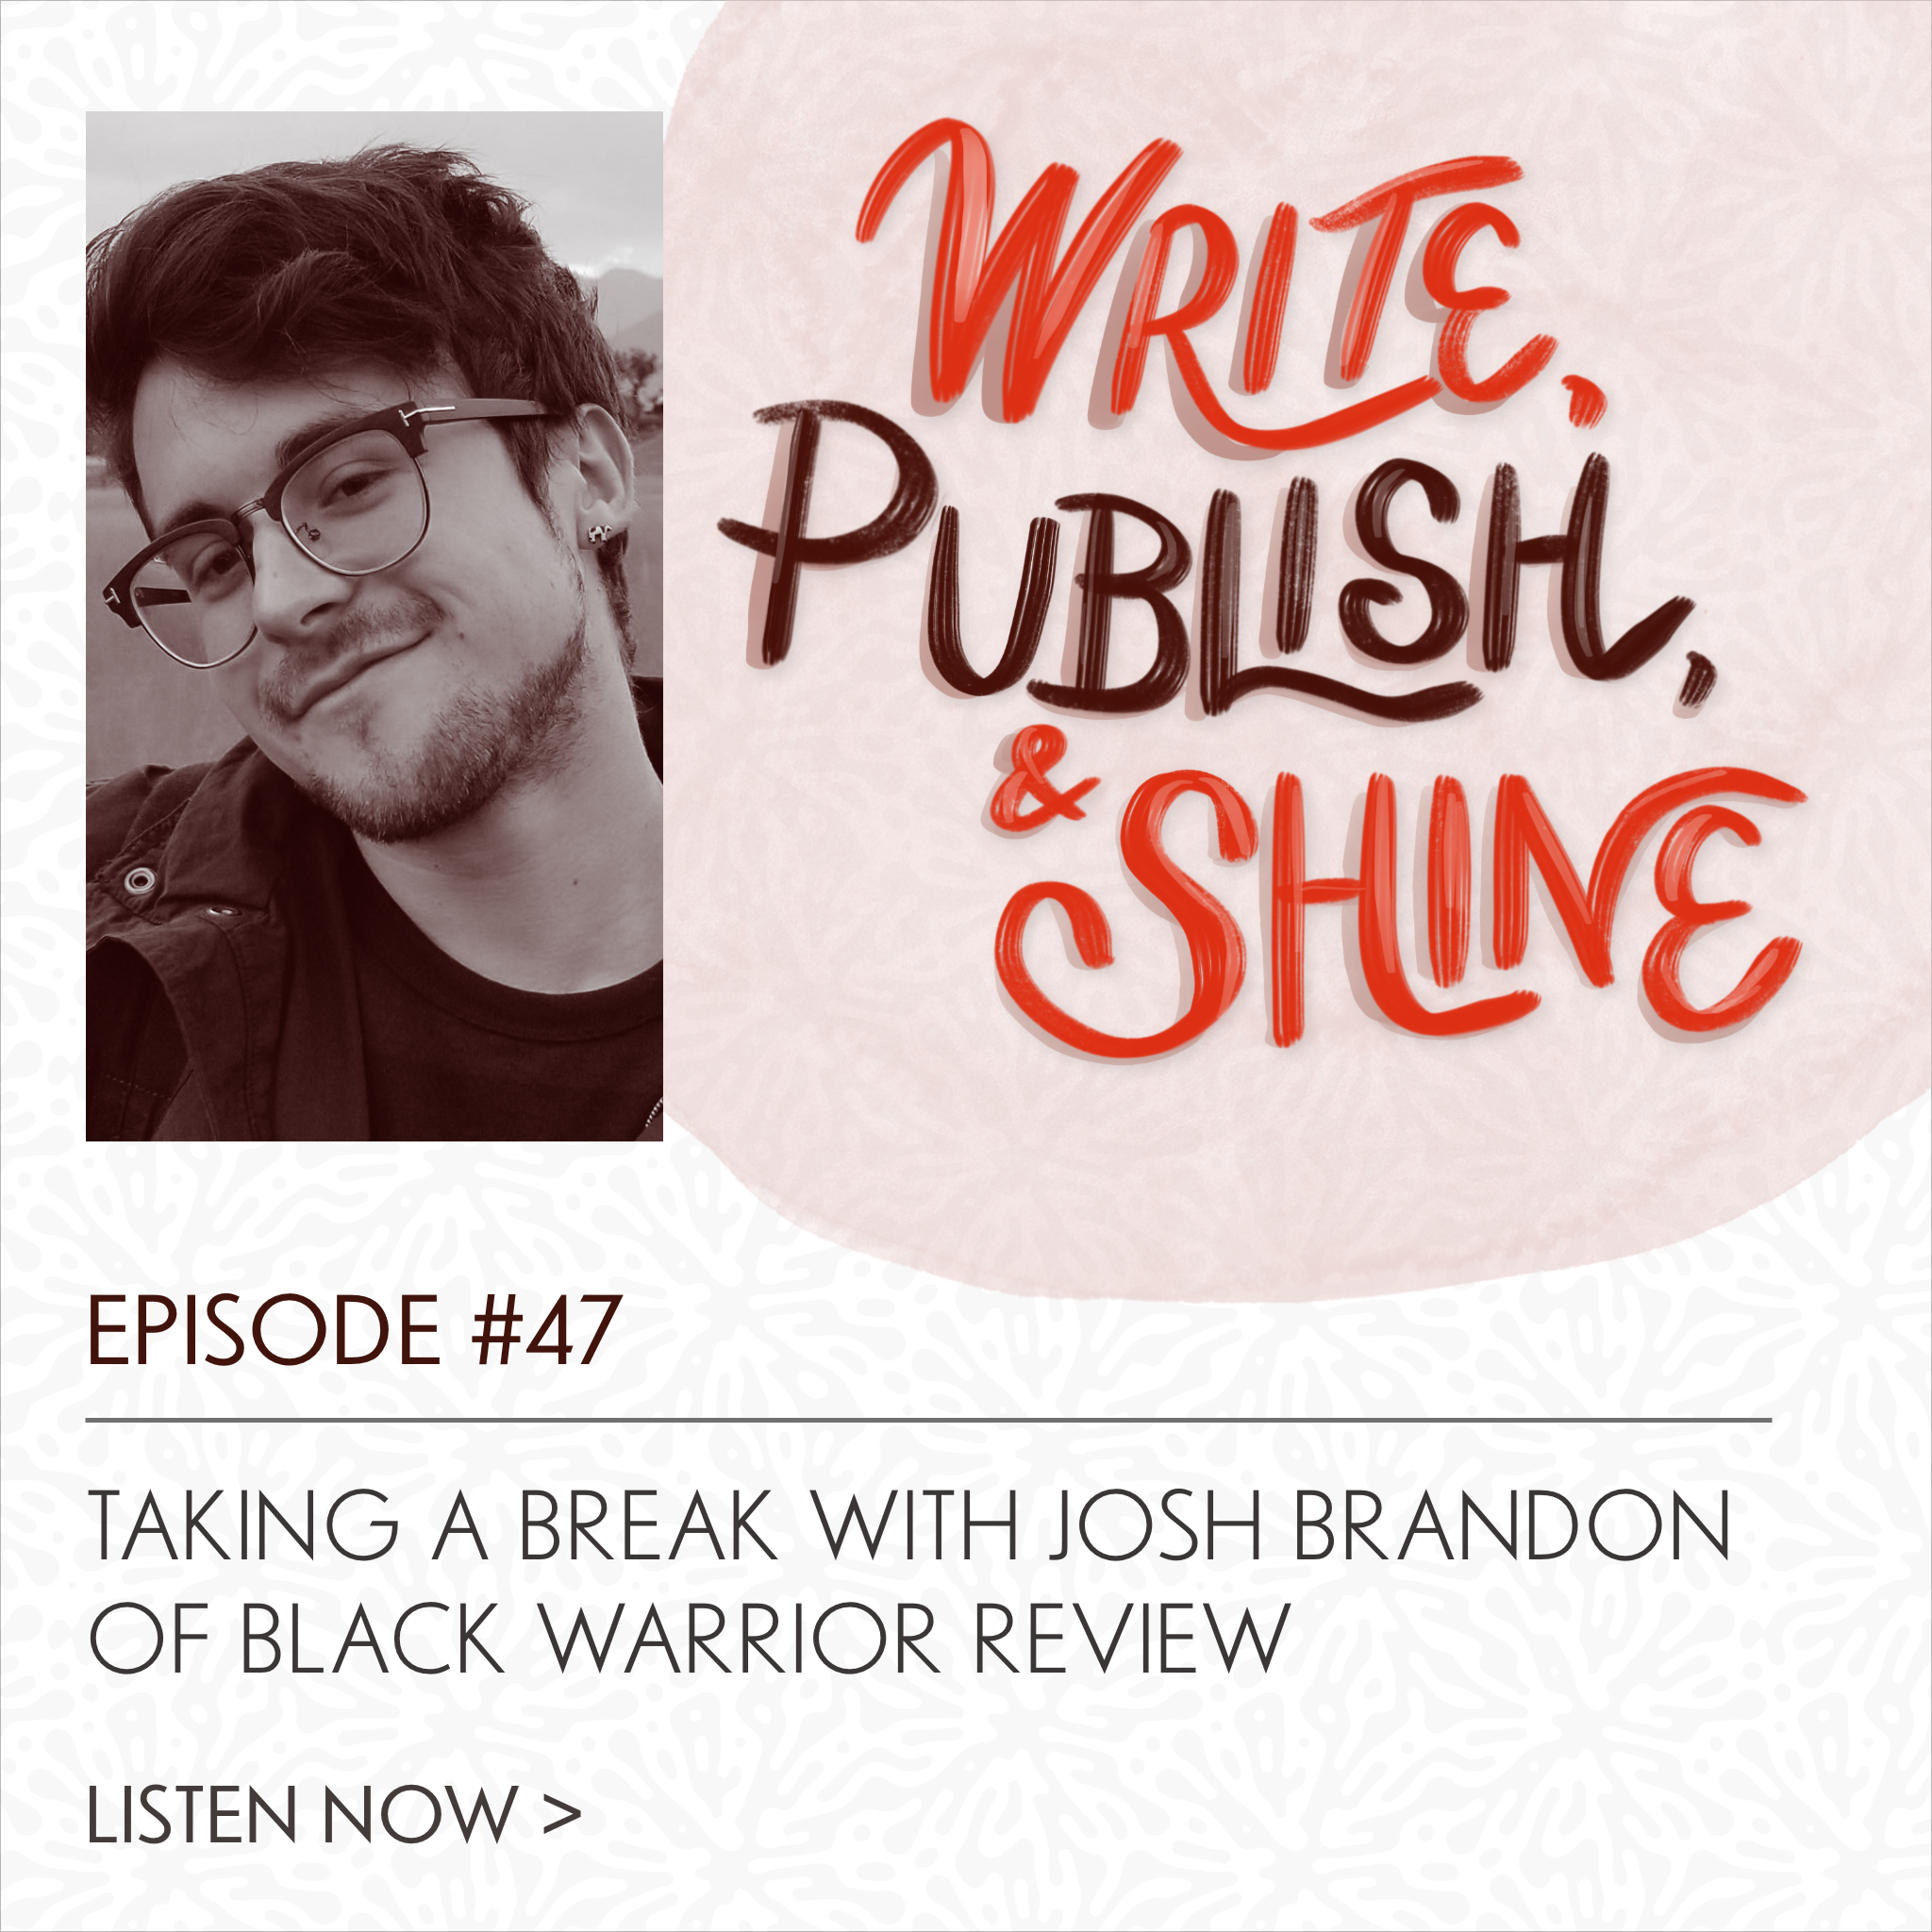 47 // Black Warrior Review Editor Josh Brandon on Taking Necessary Breaks